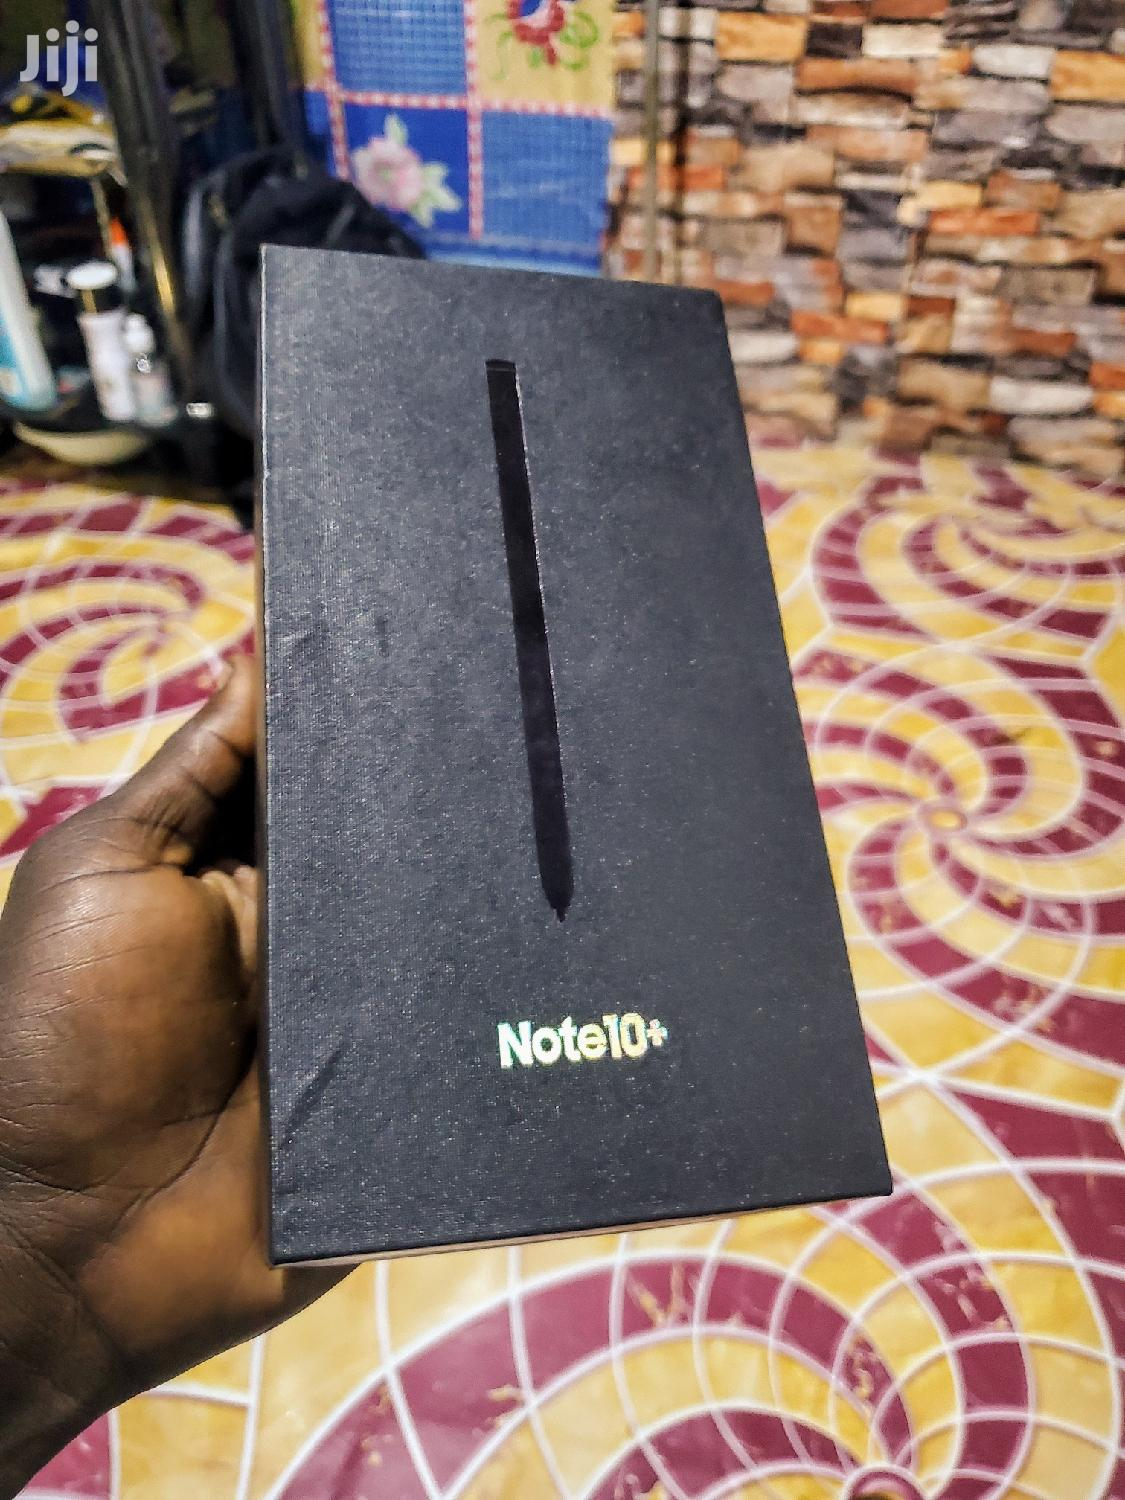 Samsung Galaxy Note 10 Plus 256 GB Black | Mobile Phones for sale in Accra Metropolitan, Greater Accra, Ghana